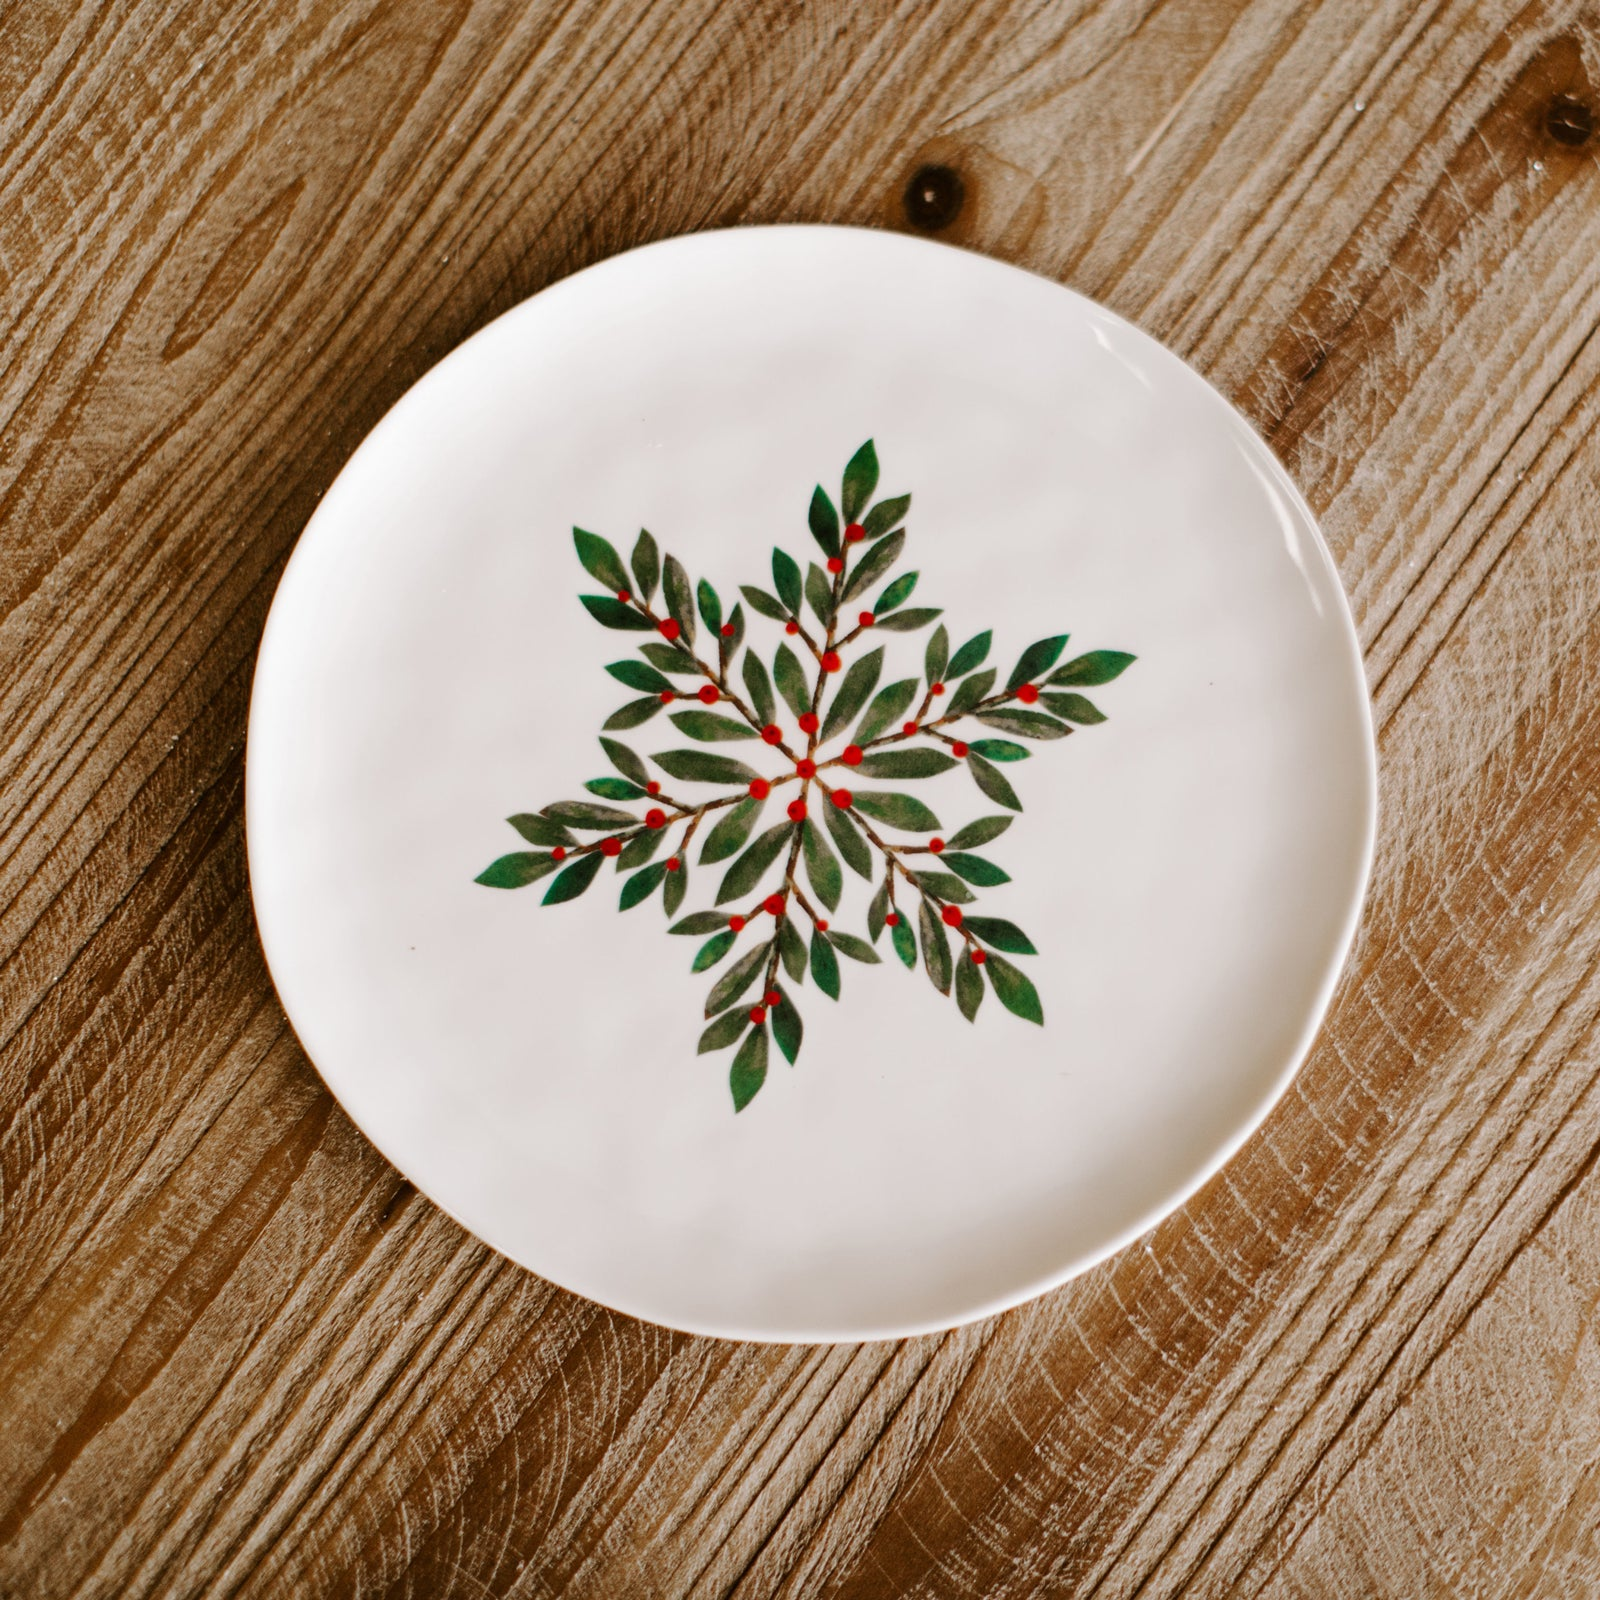 A 9 inch diameter winter plate with a pattern of dark green leaves and berries forming a snowflake type of pattern resting on a Christmas dinner table